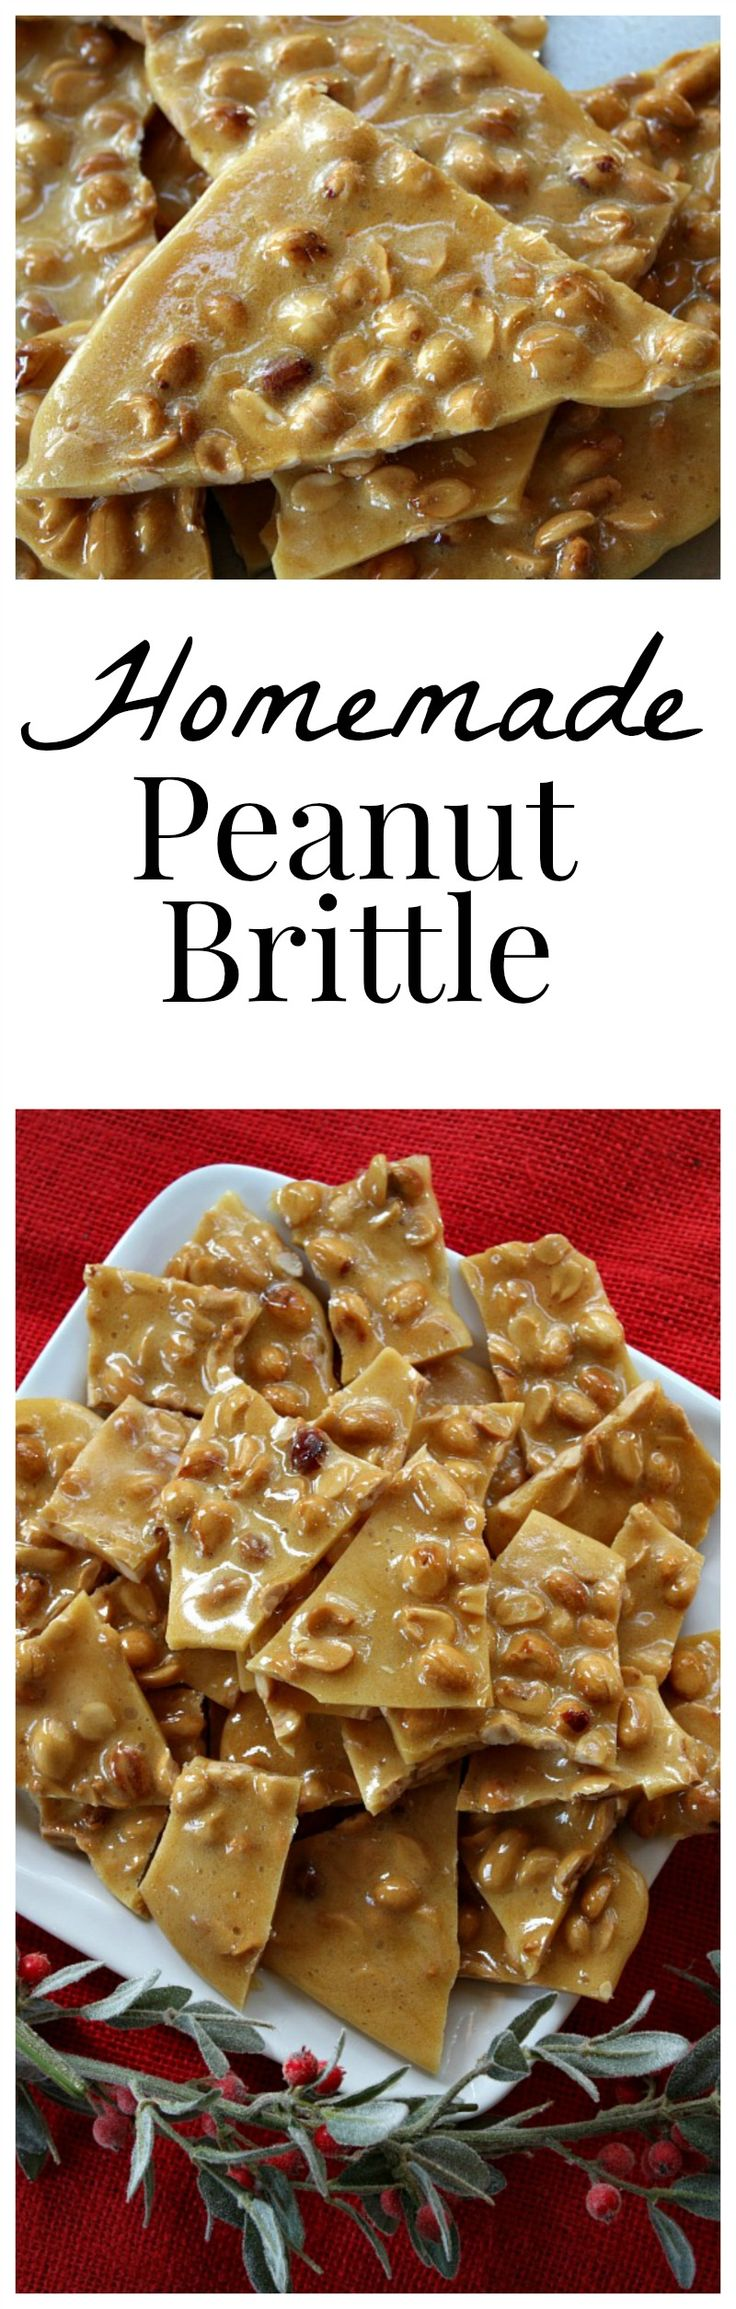 Easy Homemade Peanut Brittle Recipe : save this one for your holiday treat platters!